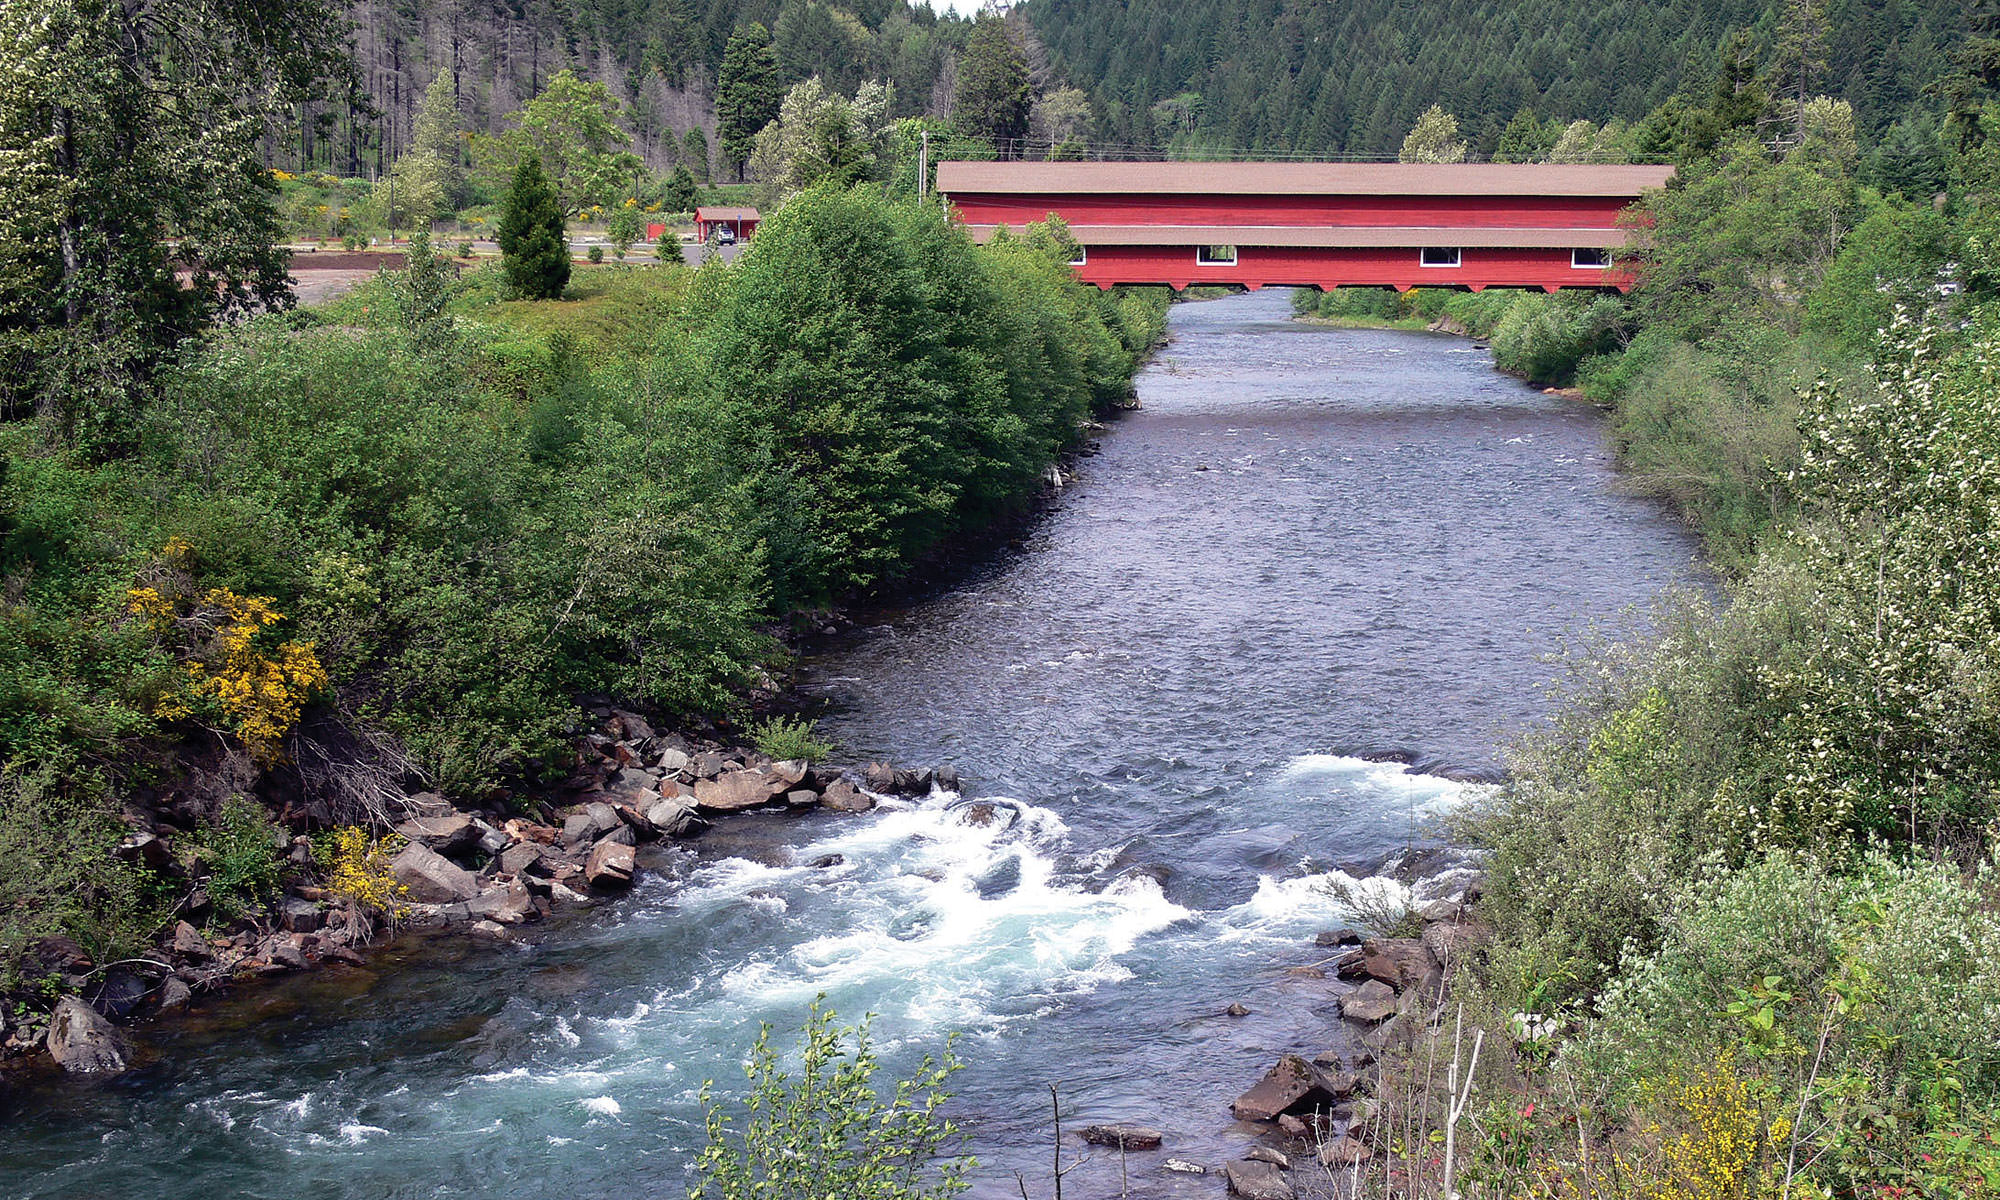 A long red covered bridge spans over a rushing river.